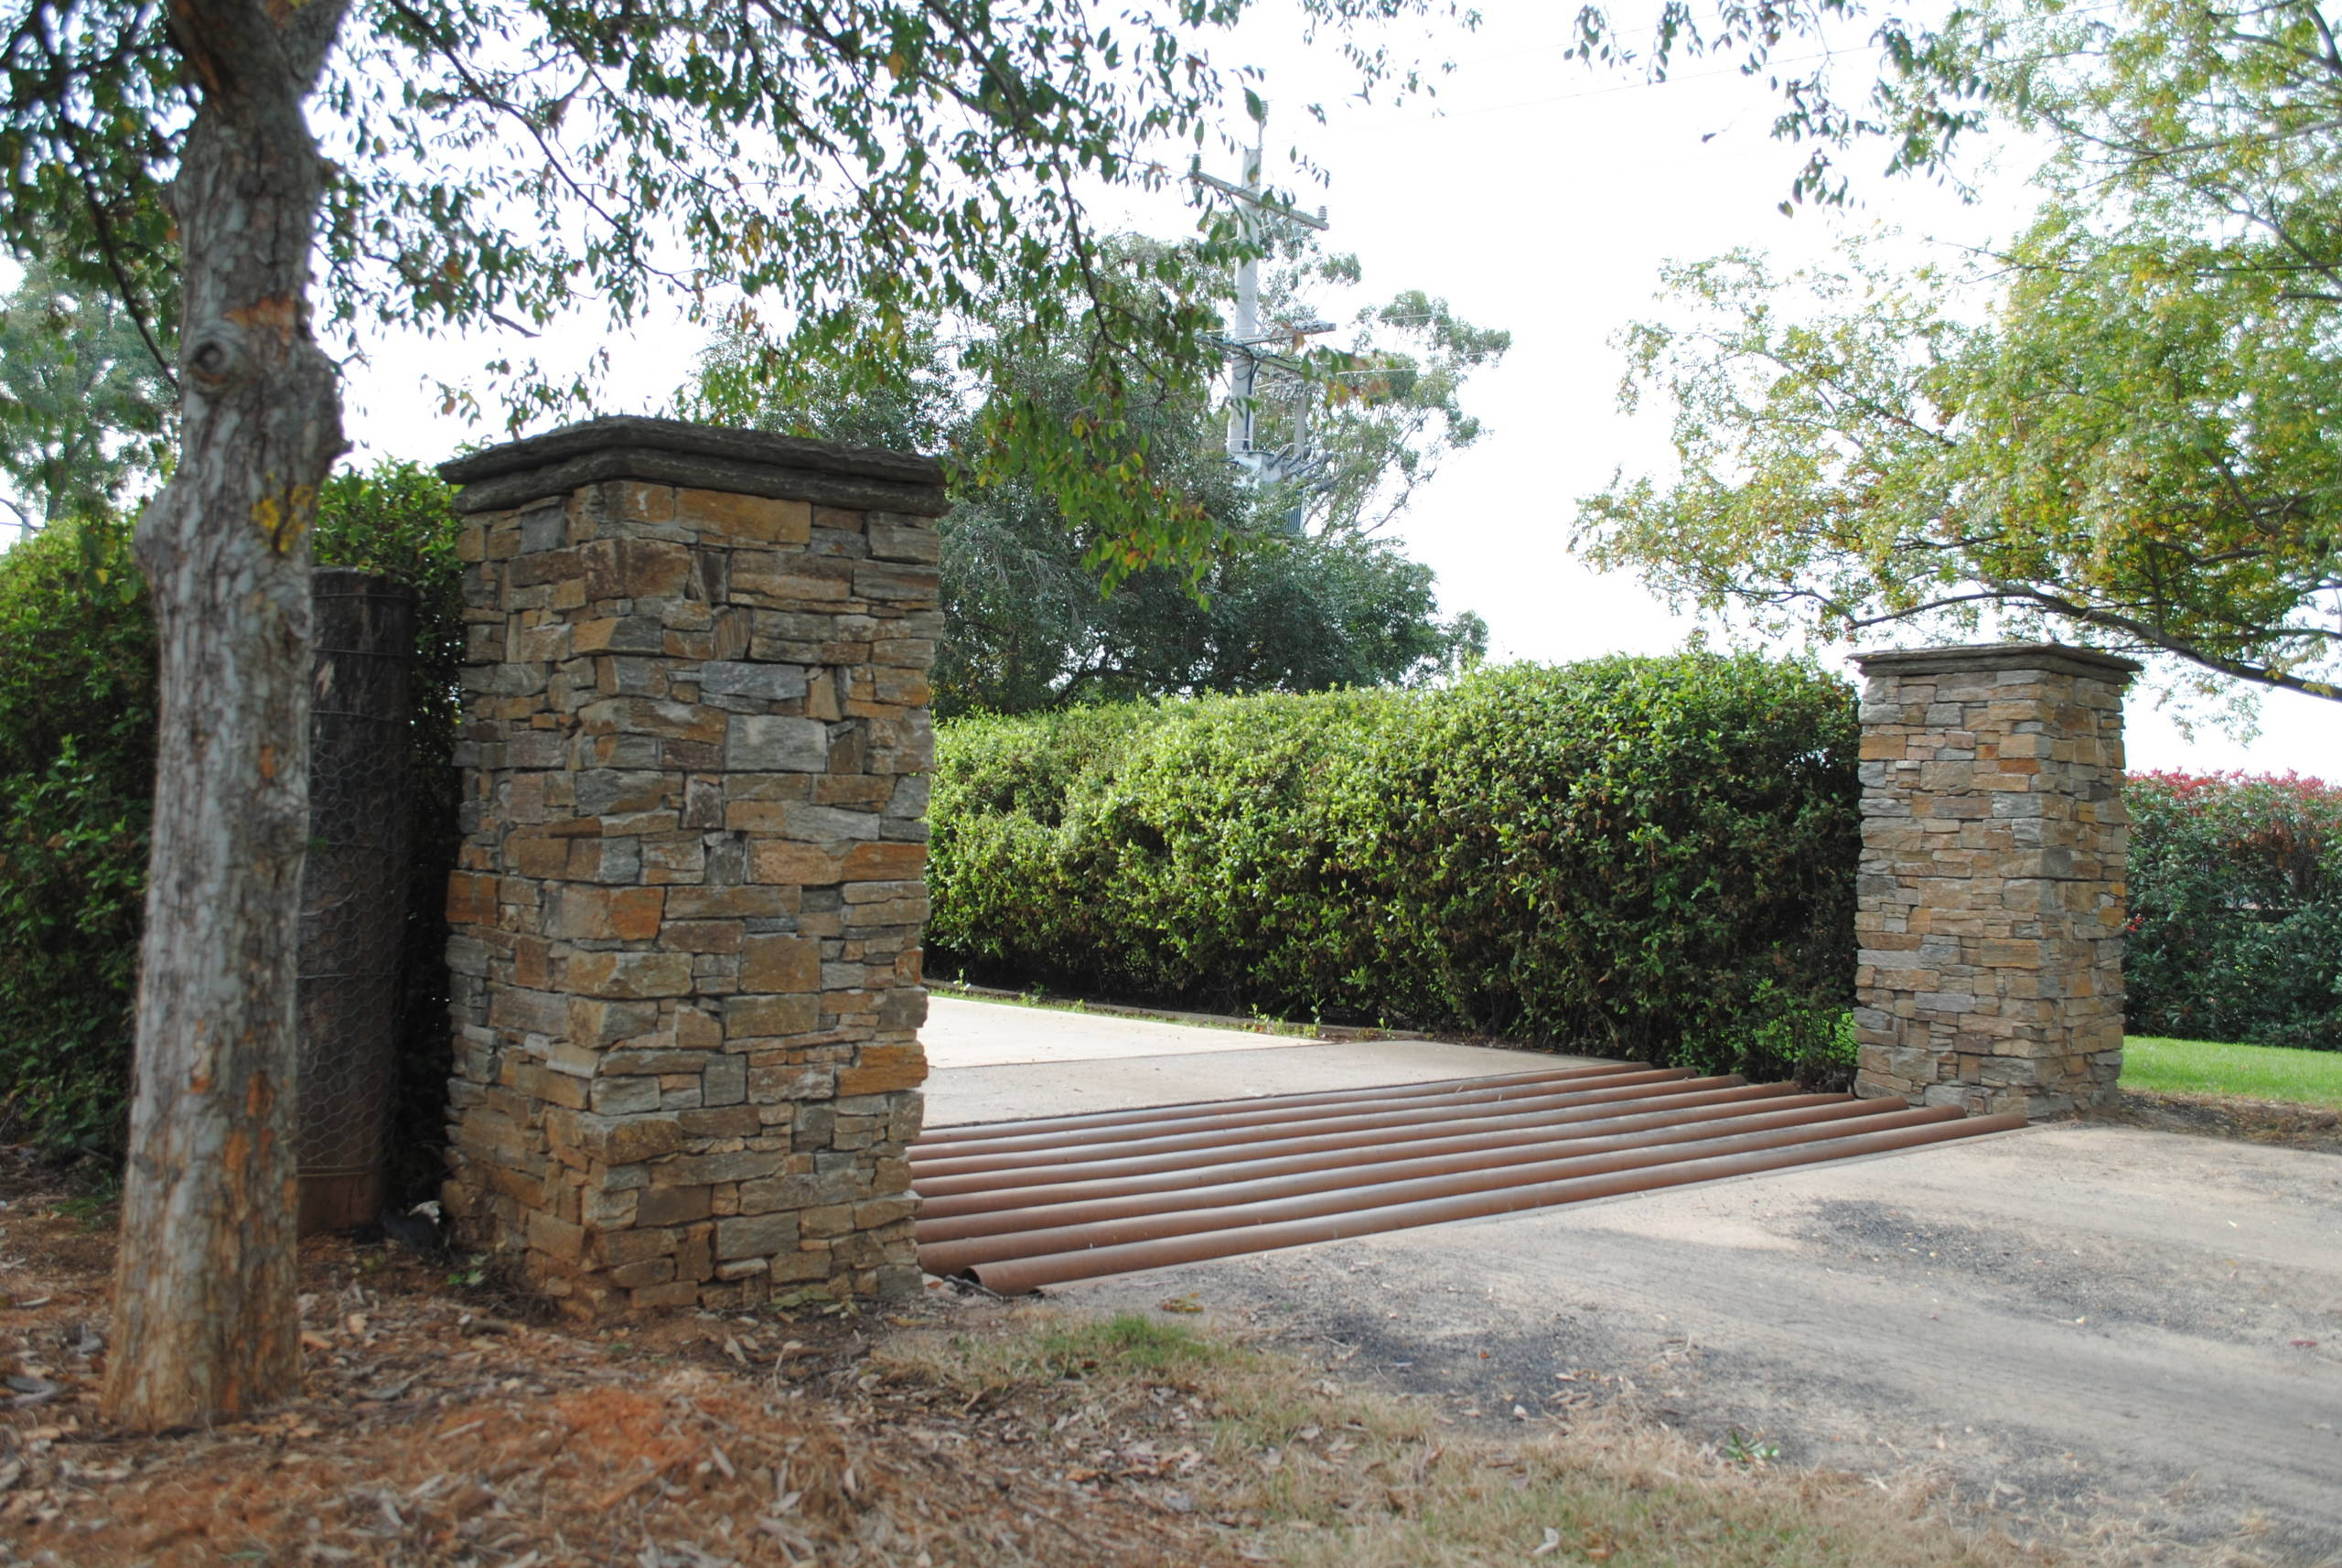 Expansive driveway with classic stone cladding